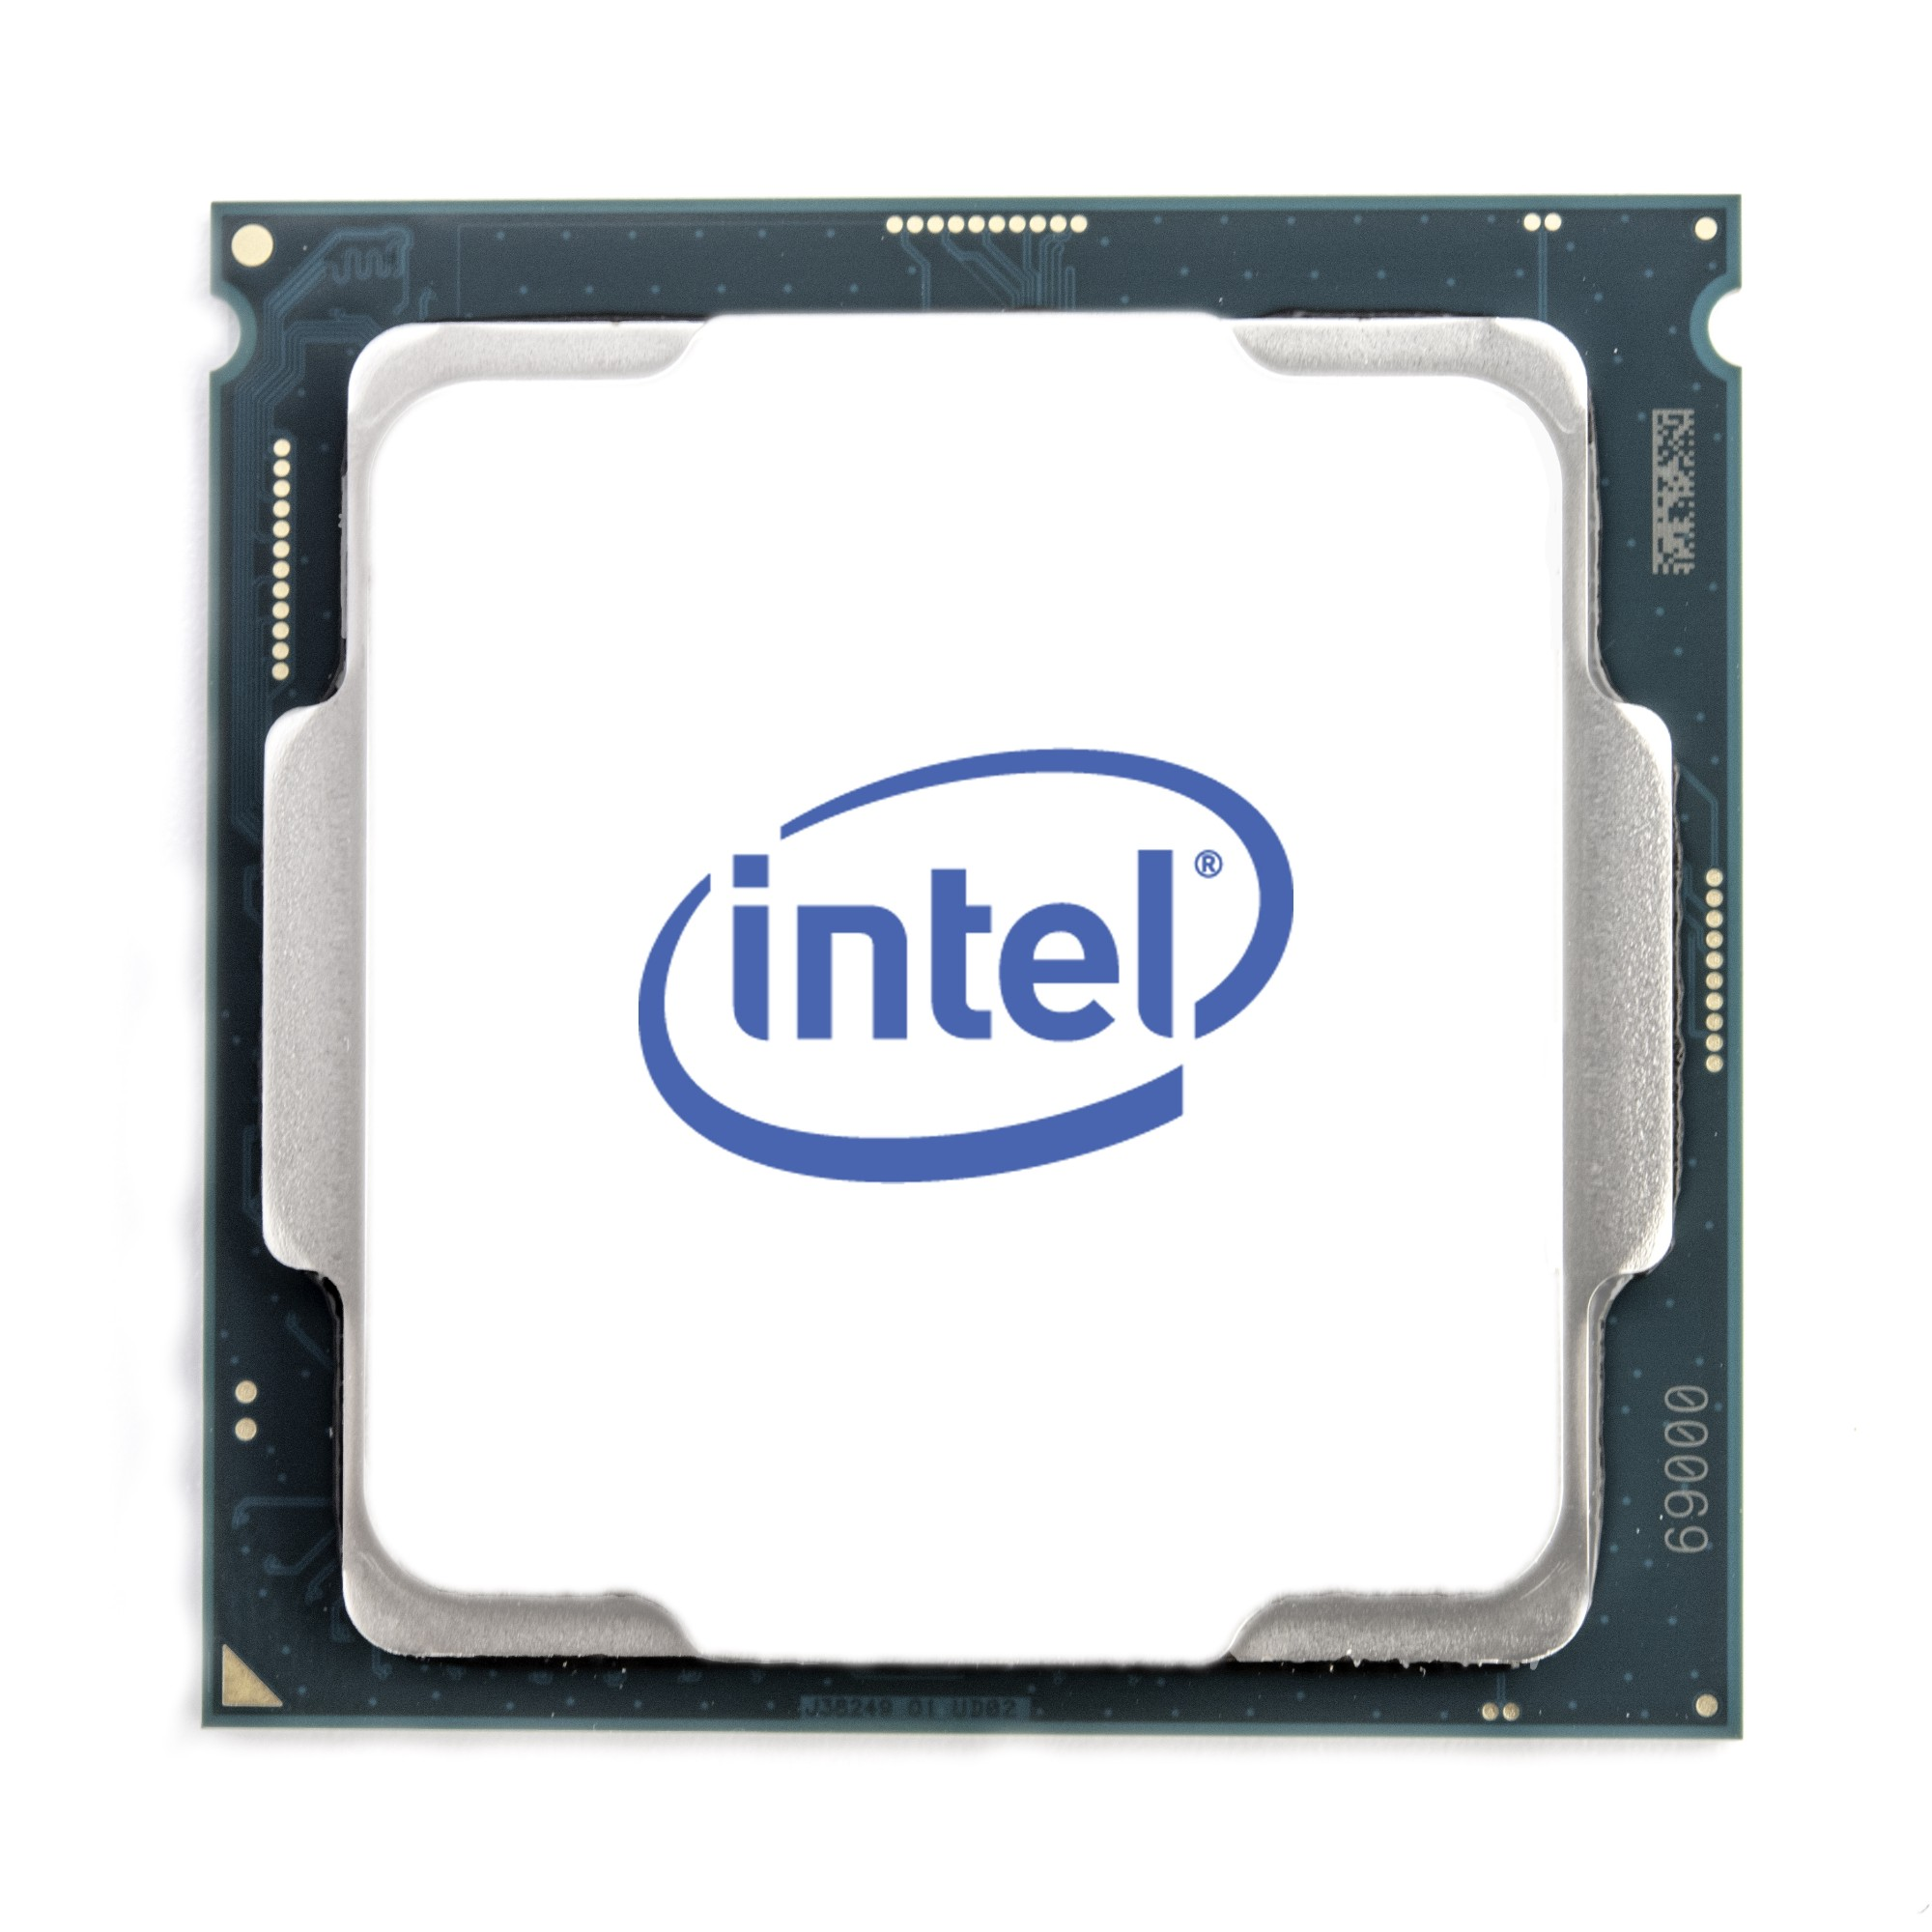 Intel Xeon W-2223 processor 3.6 GHz 8.25 MB